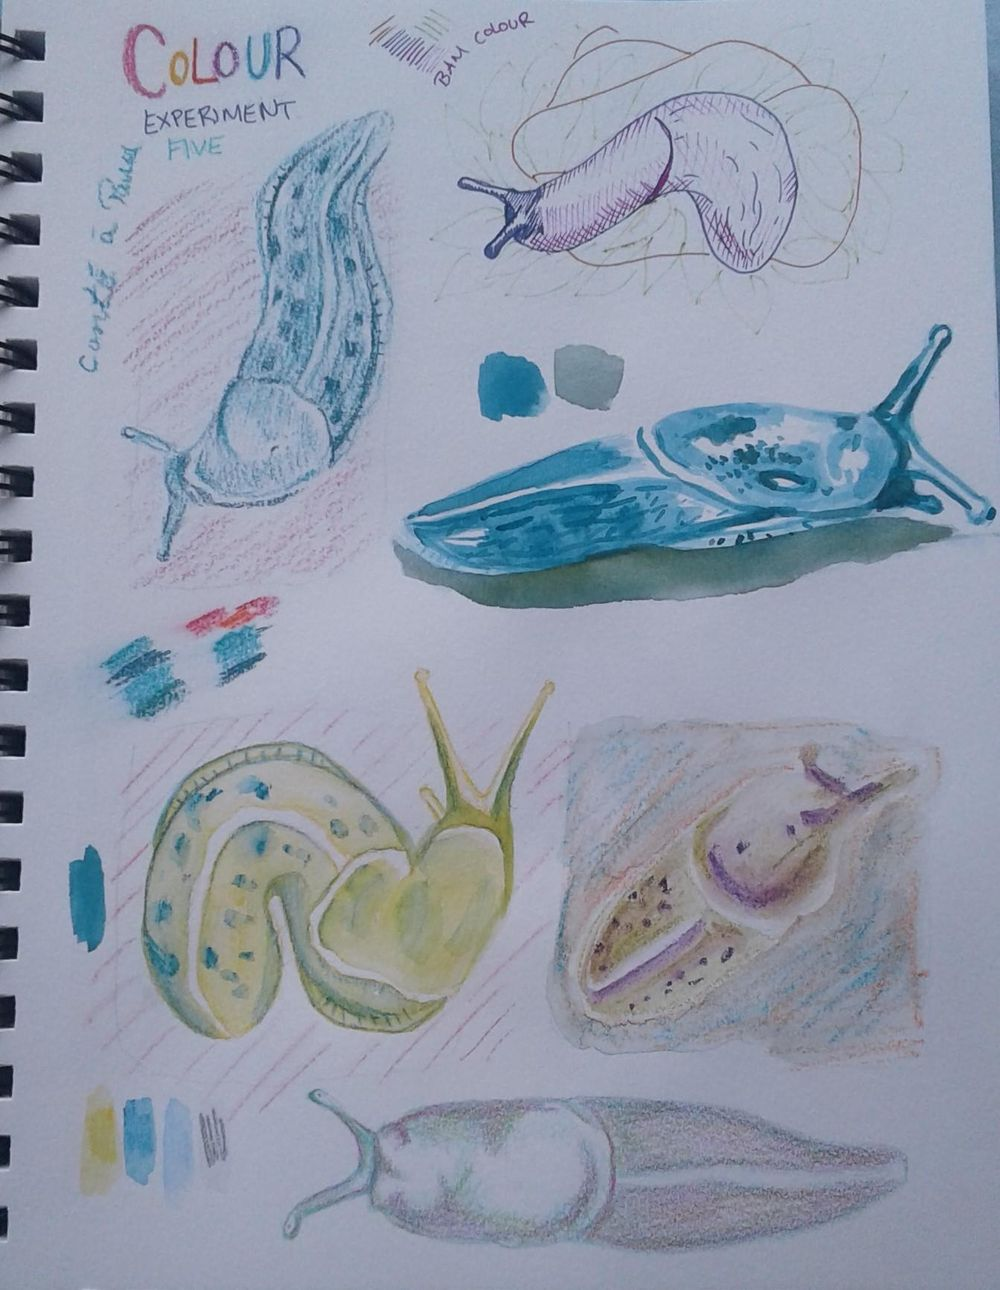 Finding My Illistration Style in 6 Simple Experiments - image 5 - student project